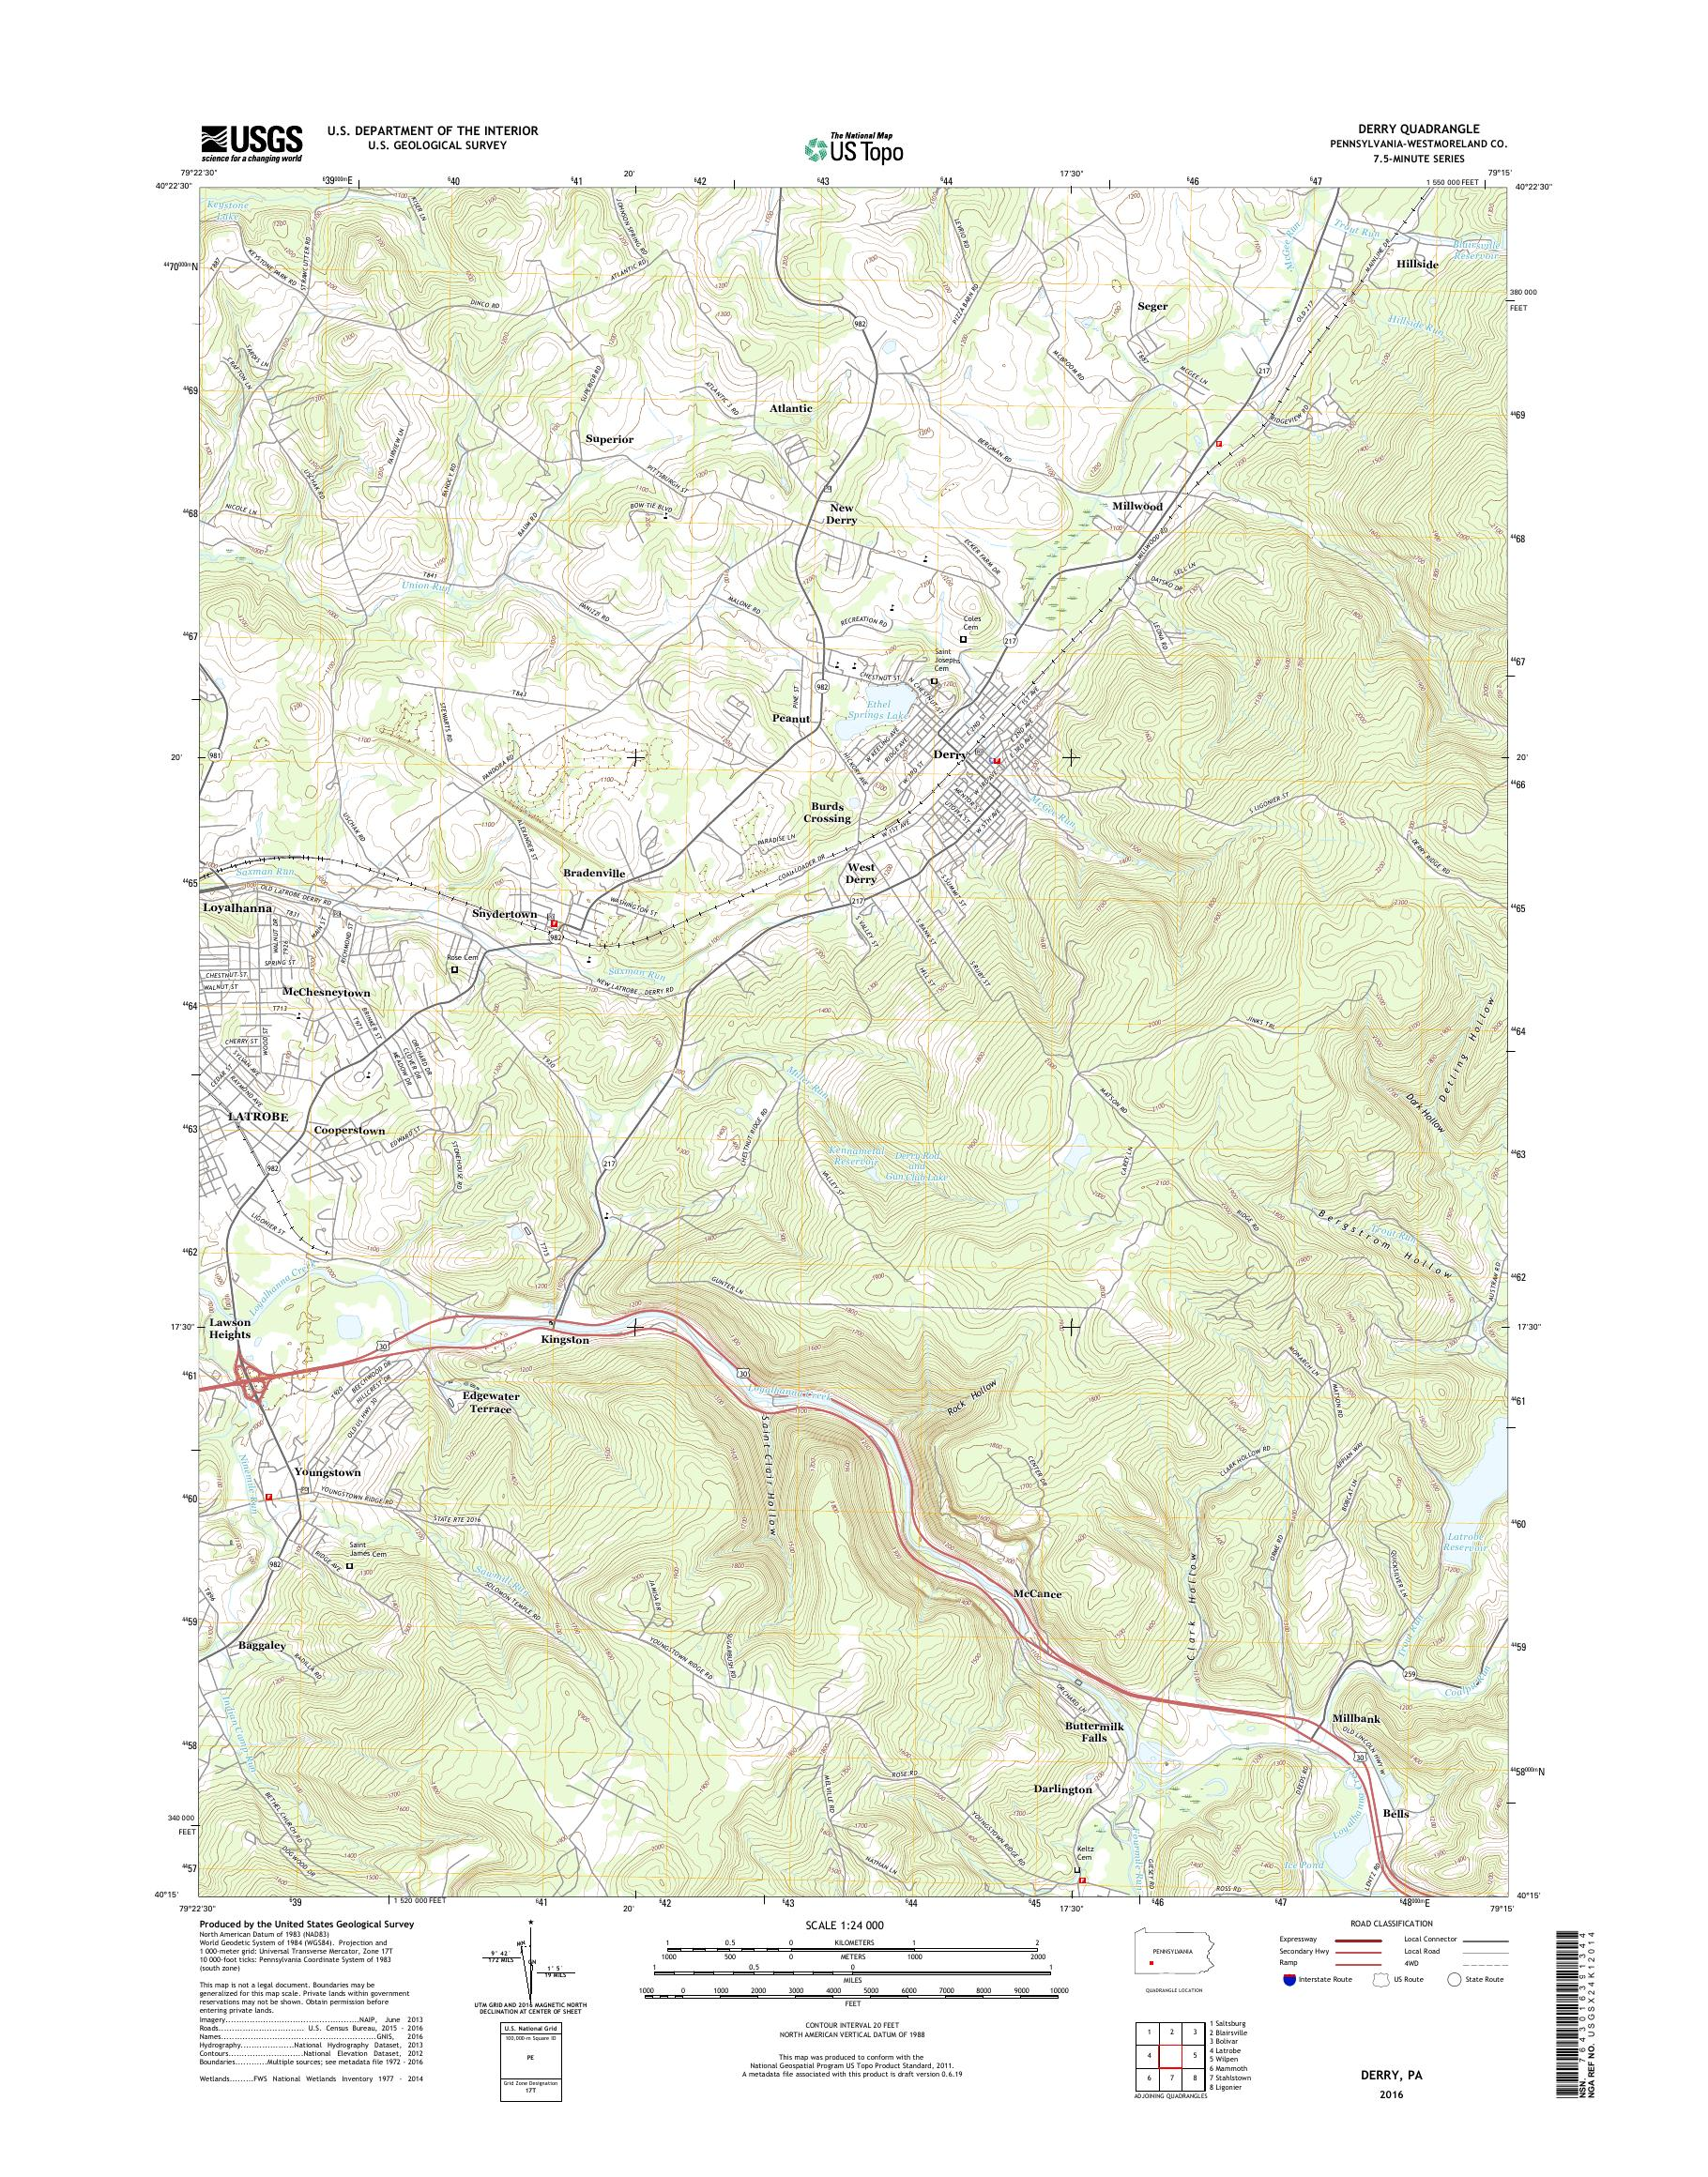 MyTopo Derry, Pennsylvania USGS Quad Topo Map on map of coal center pa, map of madison pa, map of york pa, map of castanea pa, map of berkshire pa, map of ford city pa, map of webster pa, map of avella pa, map of norwich pa, map of washington pa, map of ambler pa, map of chalk hill pa, map of avis pa, map of new bloomfield pa, map of scotland pa, map of new alexandria pa, map of cardiff pa, map of armagh pa, map of drifton pa, map of ford cliff pa,